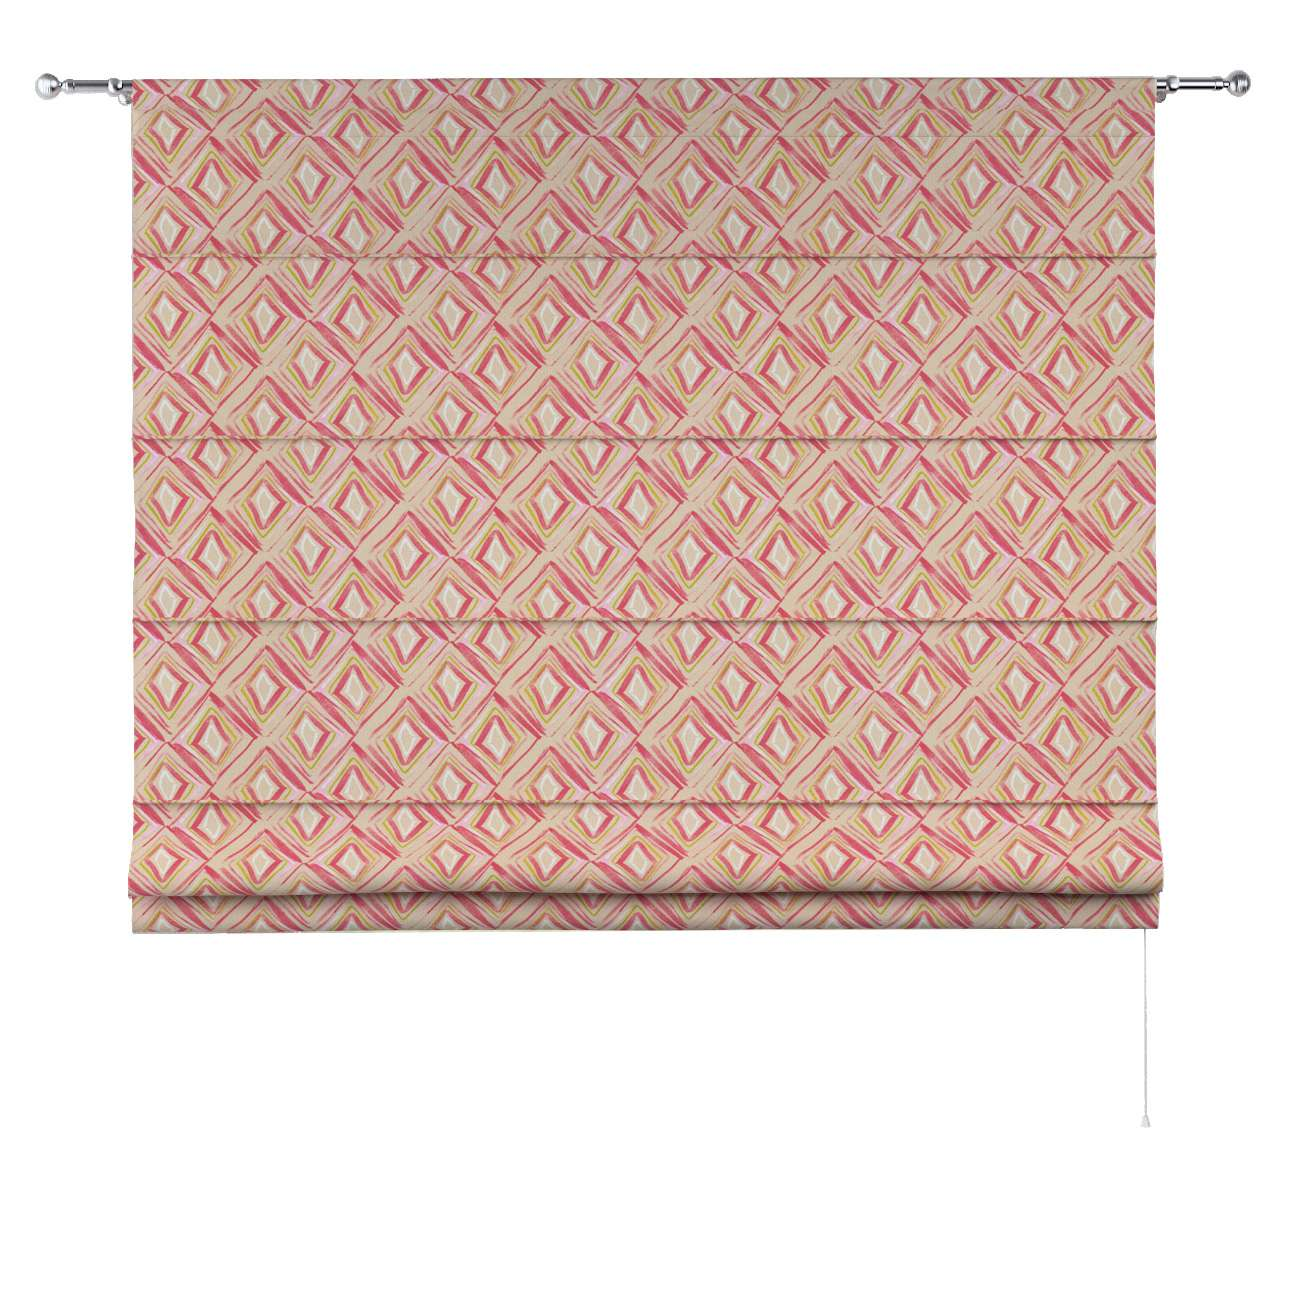 Torino slot roman blind in collection SALE, fabric: 140-45